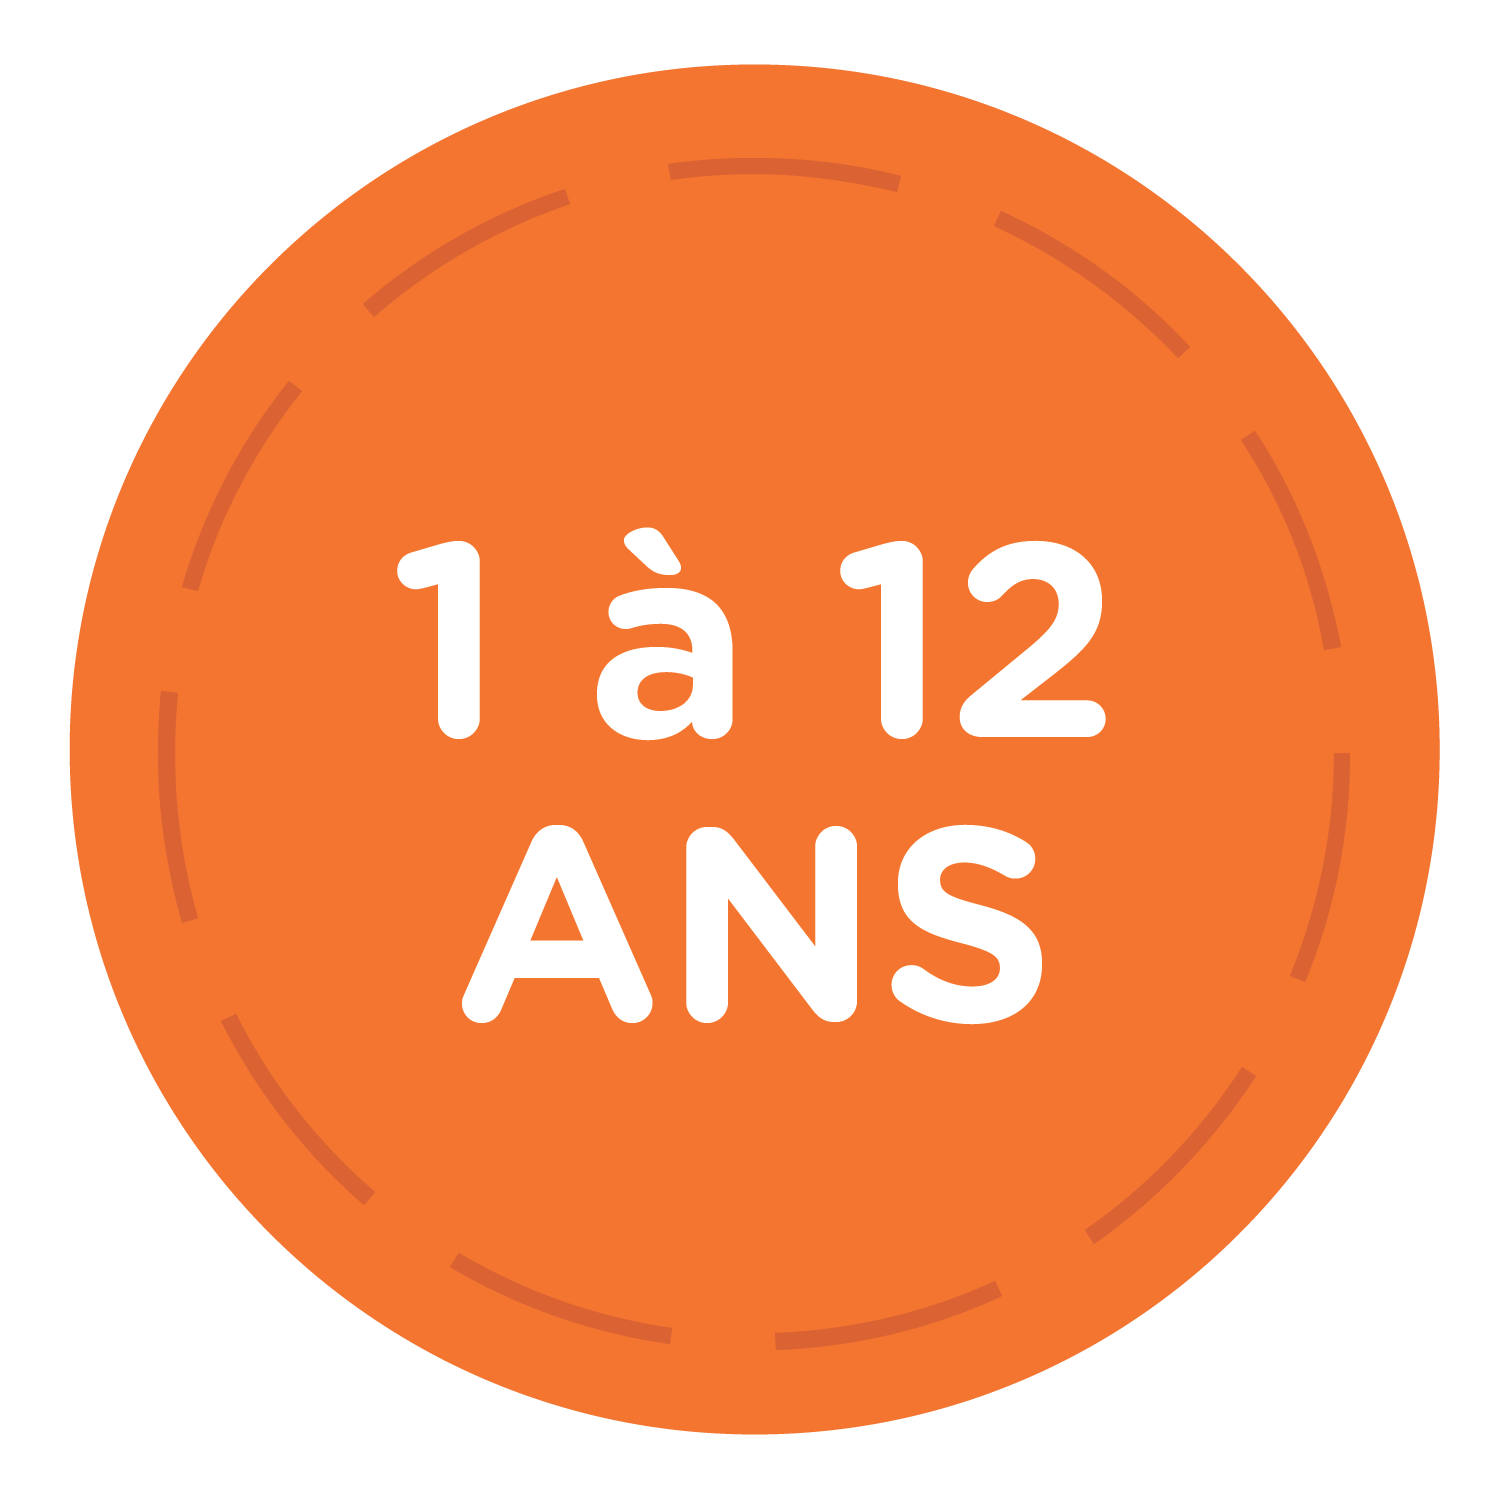 Age-Group-Circles-With-Text_Parties_French